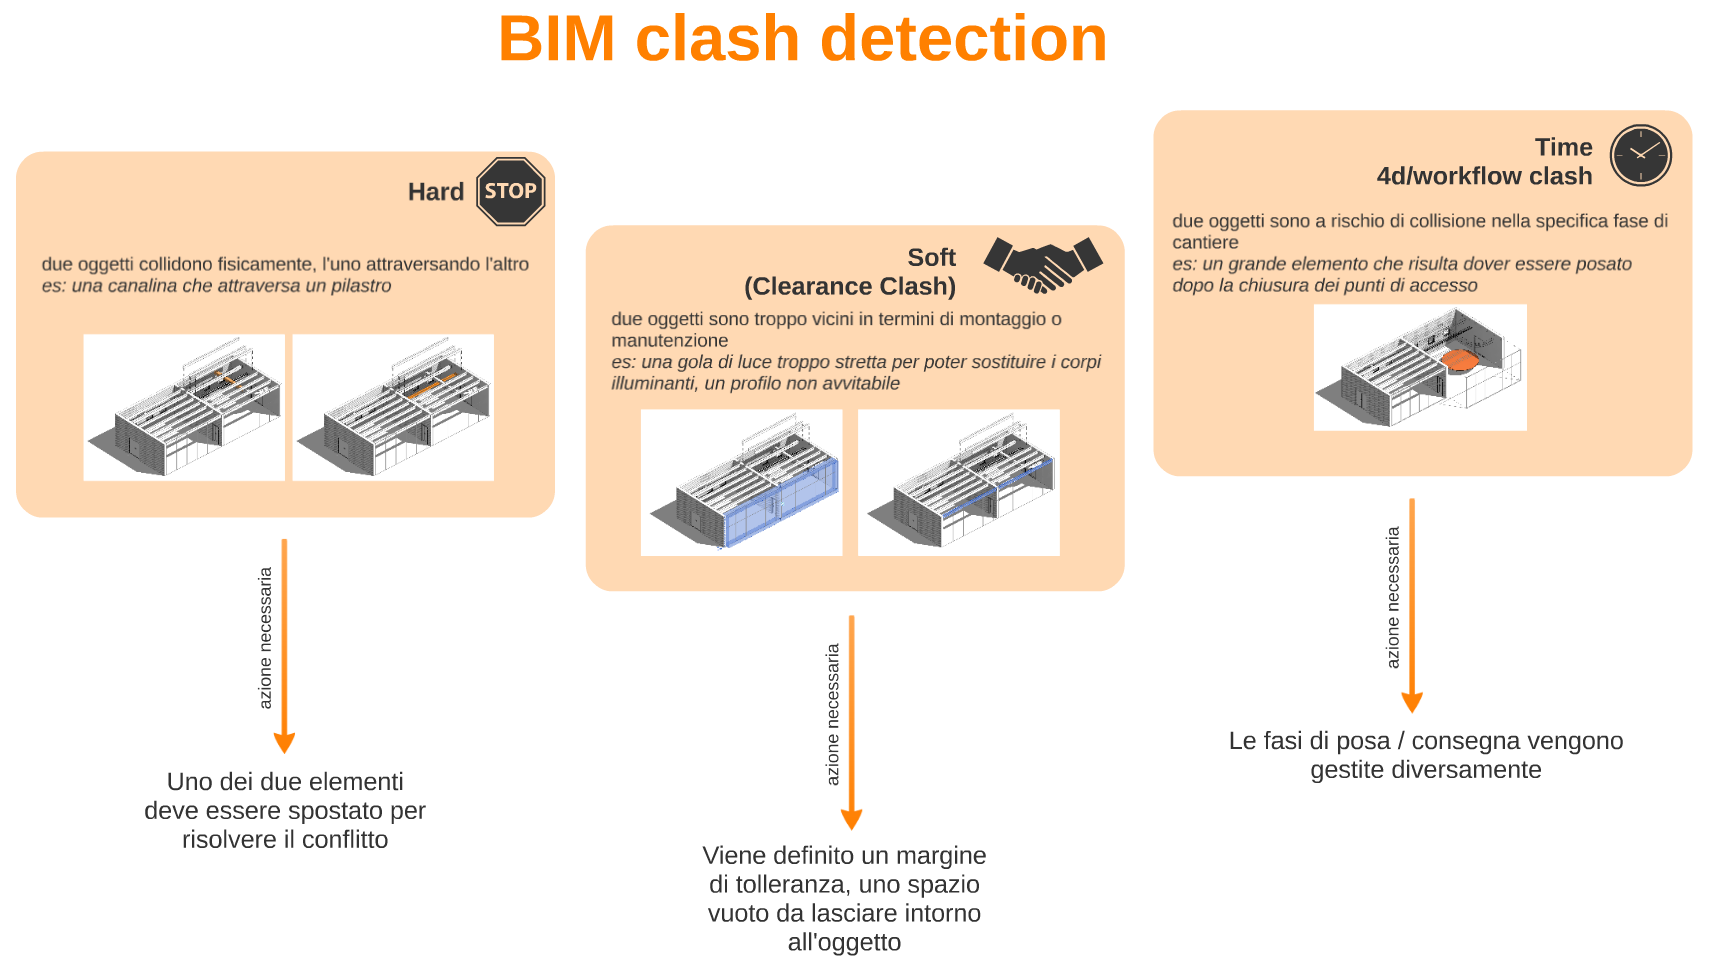 Hard, Clearance e Workflow: i tre tipi di clash nel BIM